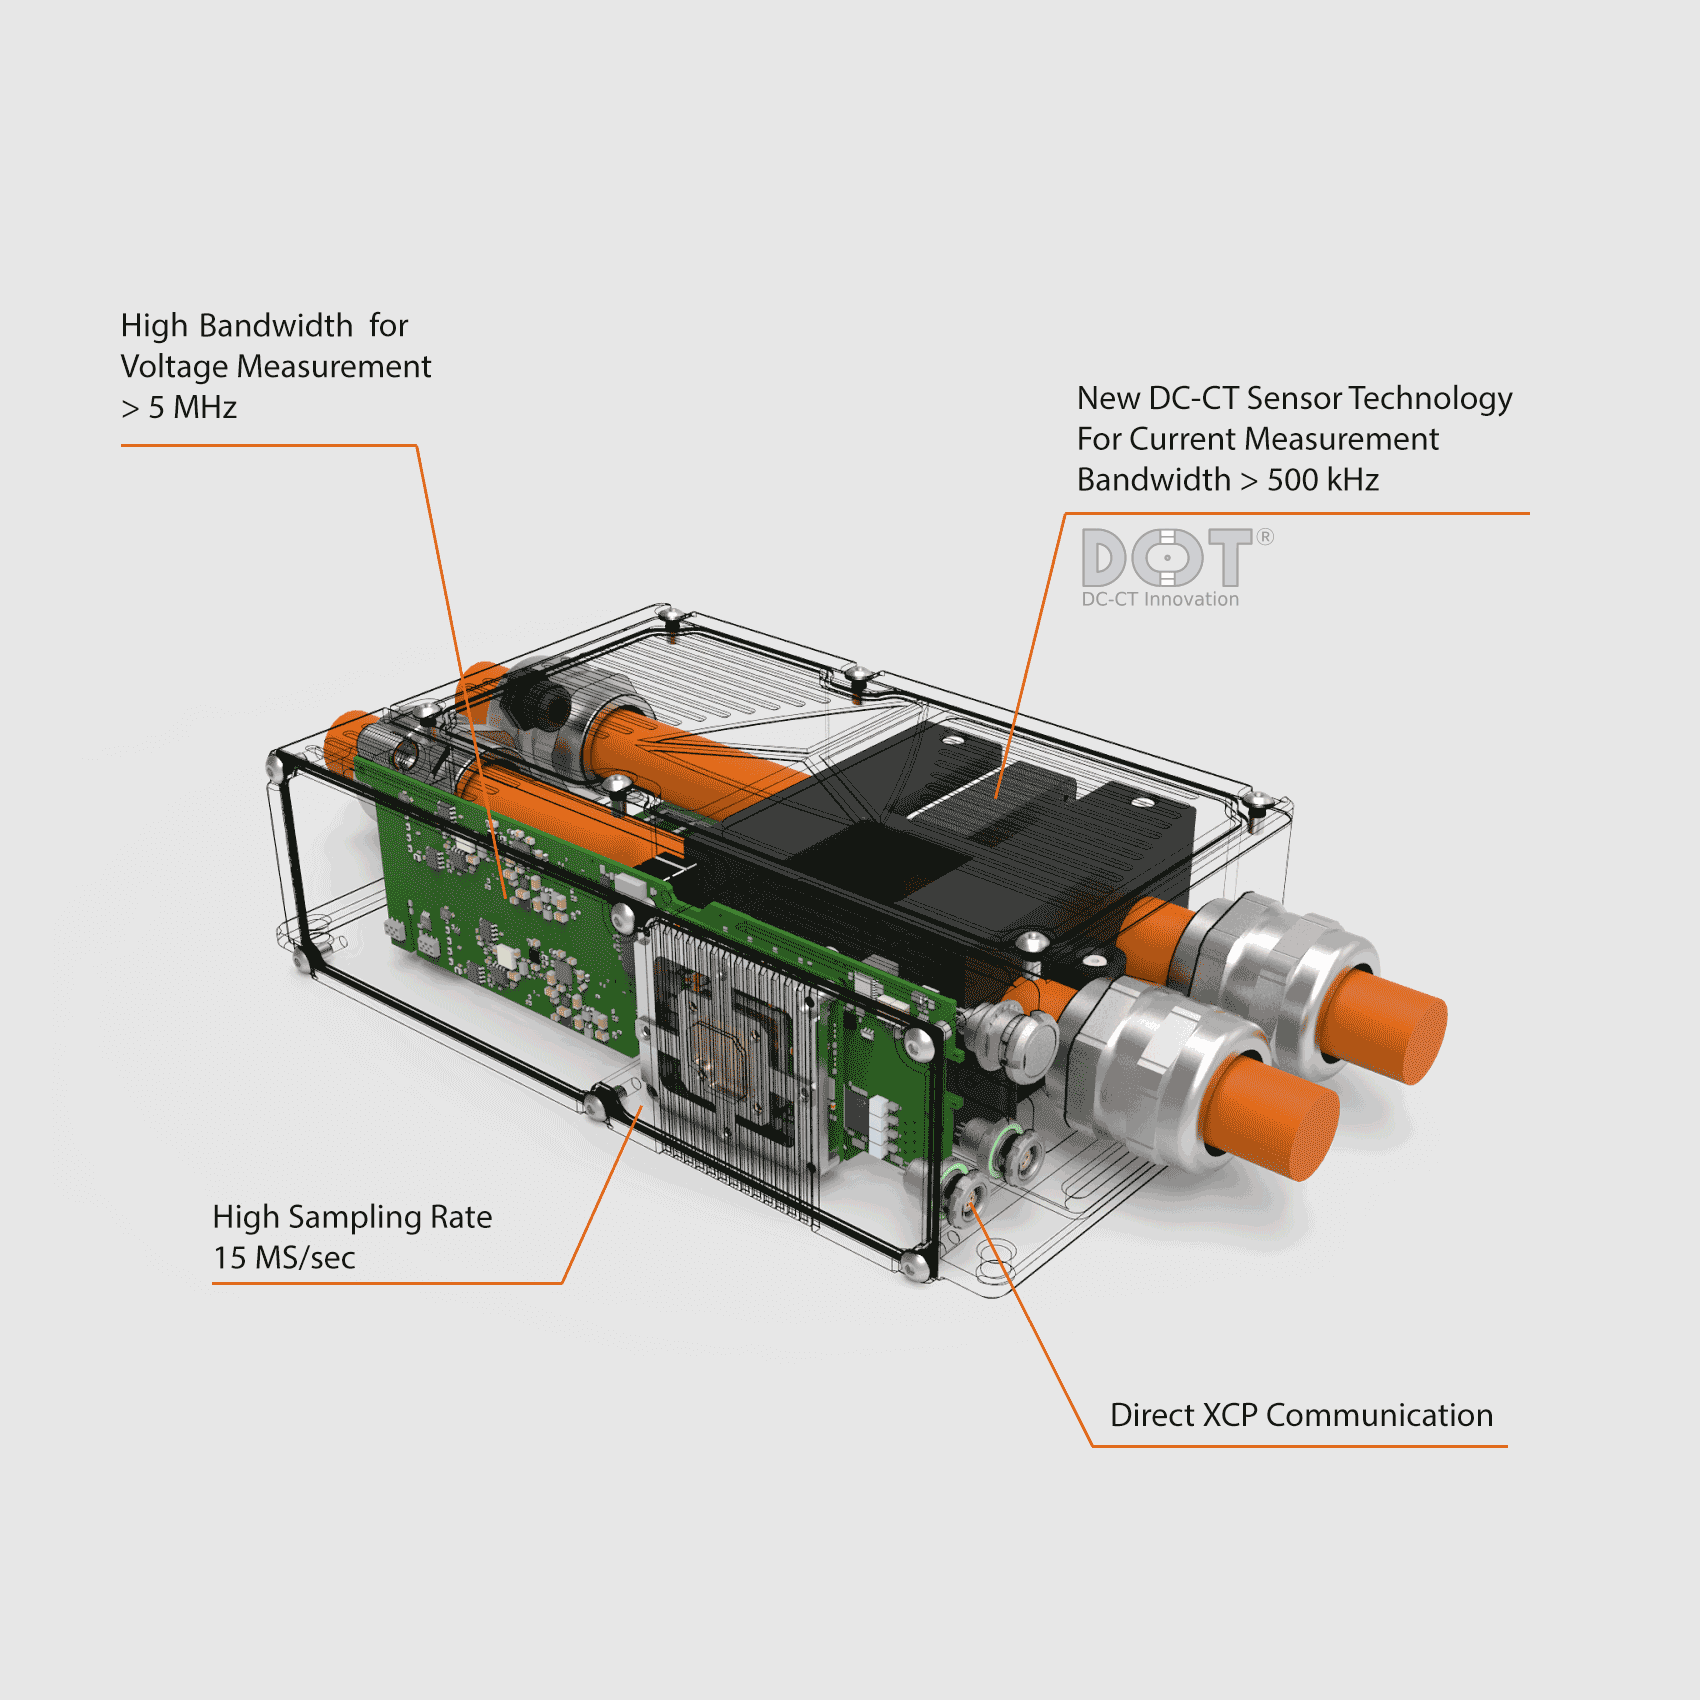 E-mobility Power Measurement Device With Integrated DC-CT Current Transducer